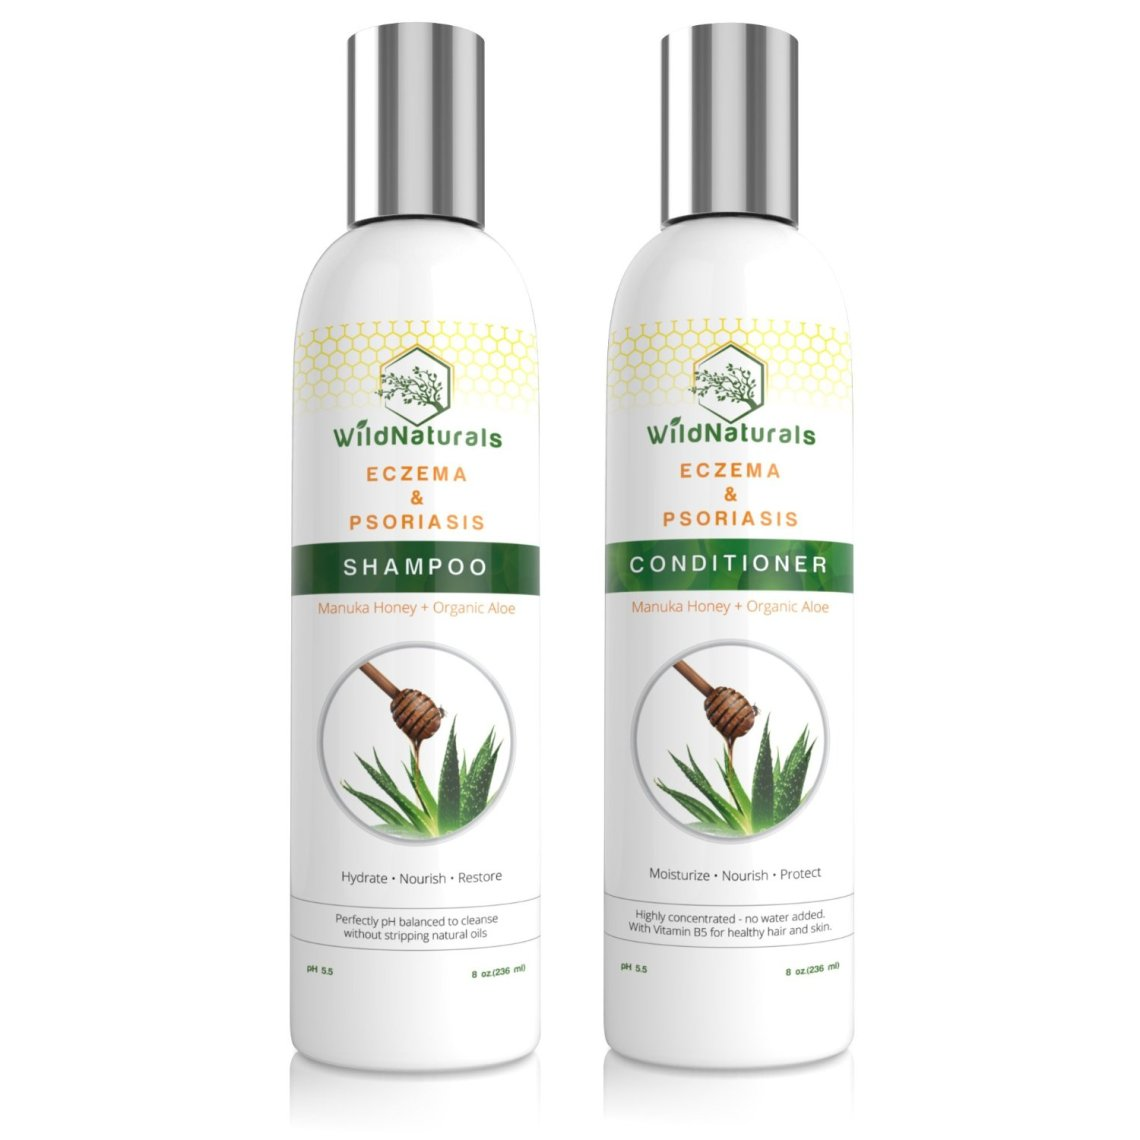 Wild Naturals Eczema/Psoriasis Shampoo/Conditioner Review